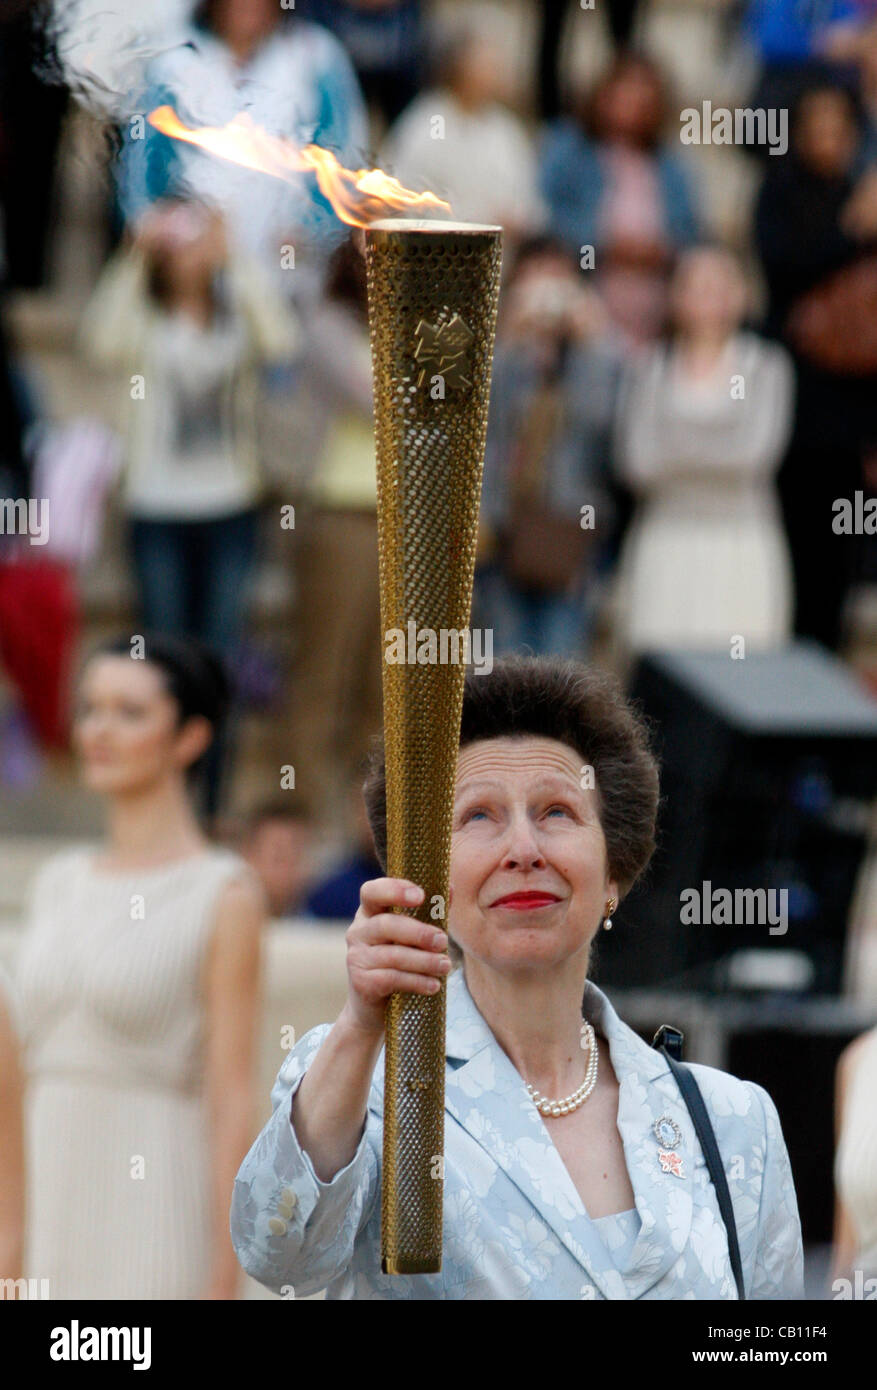 b765056ee450c May 17 2012 Athens Greece. PRINCESS ANNE, holds the torch with the Olympic  Flame